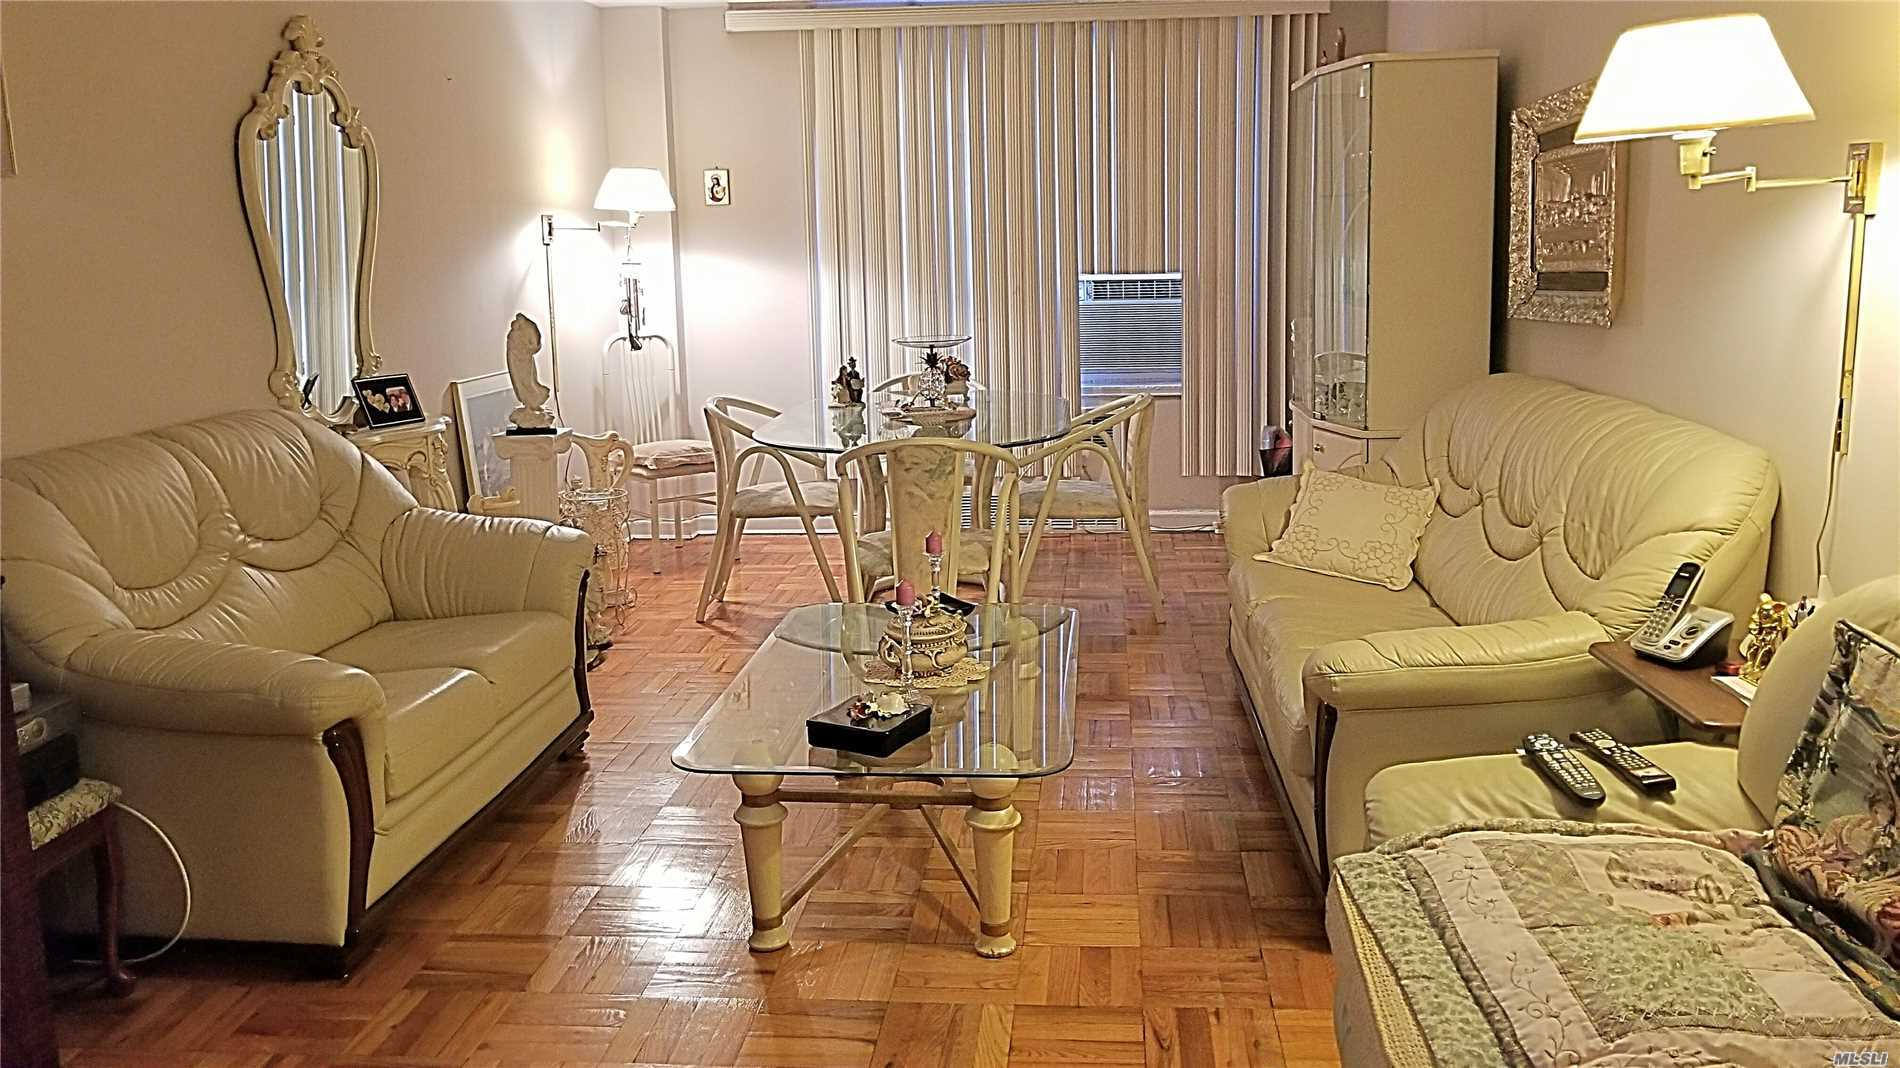 Spacious 2-Bedroom Coop Apartment. Perfect Layout. Nice Size Bedrooms. 1.5 Bathrooms. Large Living Room. Lots Of Closets. Eat In Kitchen. Laundry Onsite. Easy Commute Close To All Kind Of Transportation.